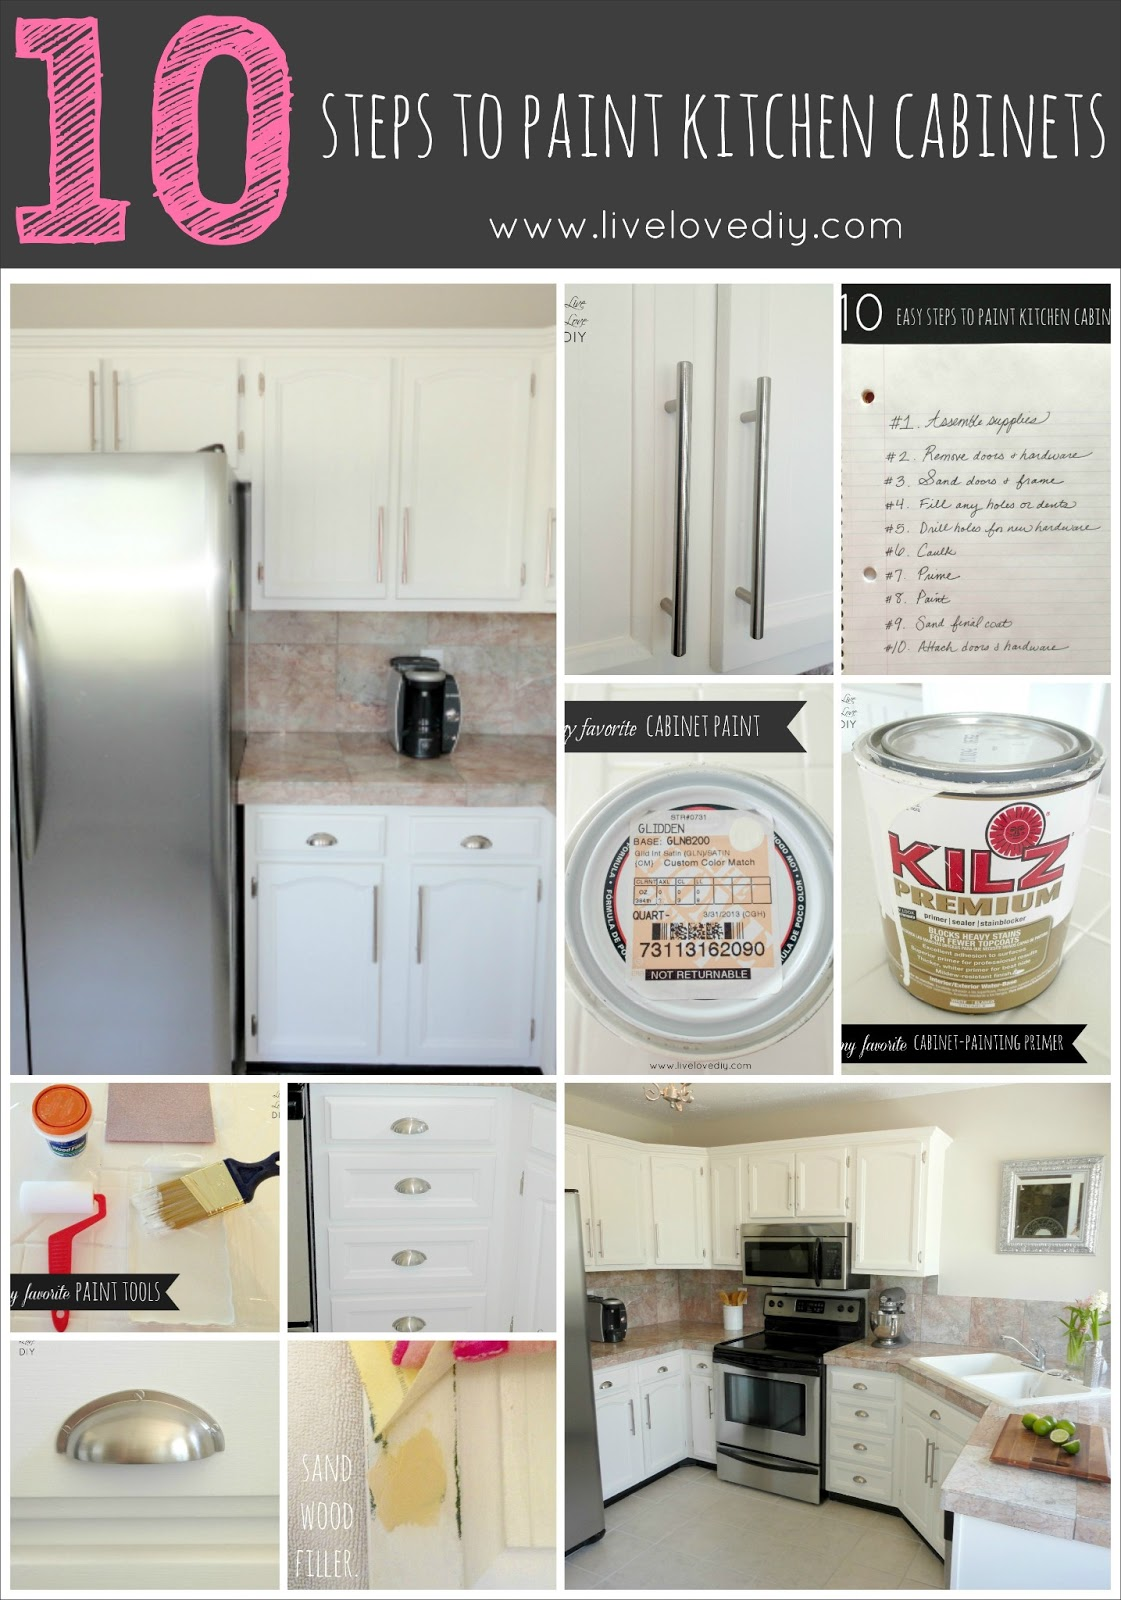 Can I Paint My Kitchen Cabinets Concrete Sink Livelovediy How To In 10 Easy Steps